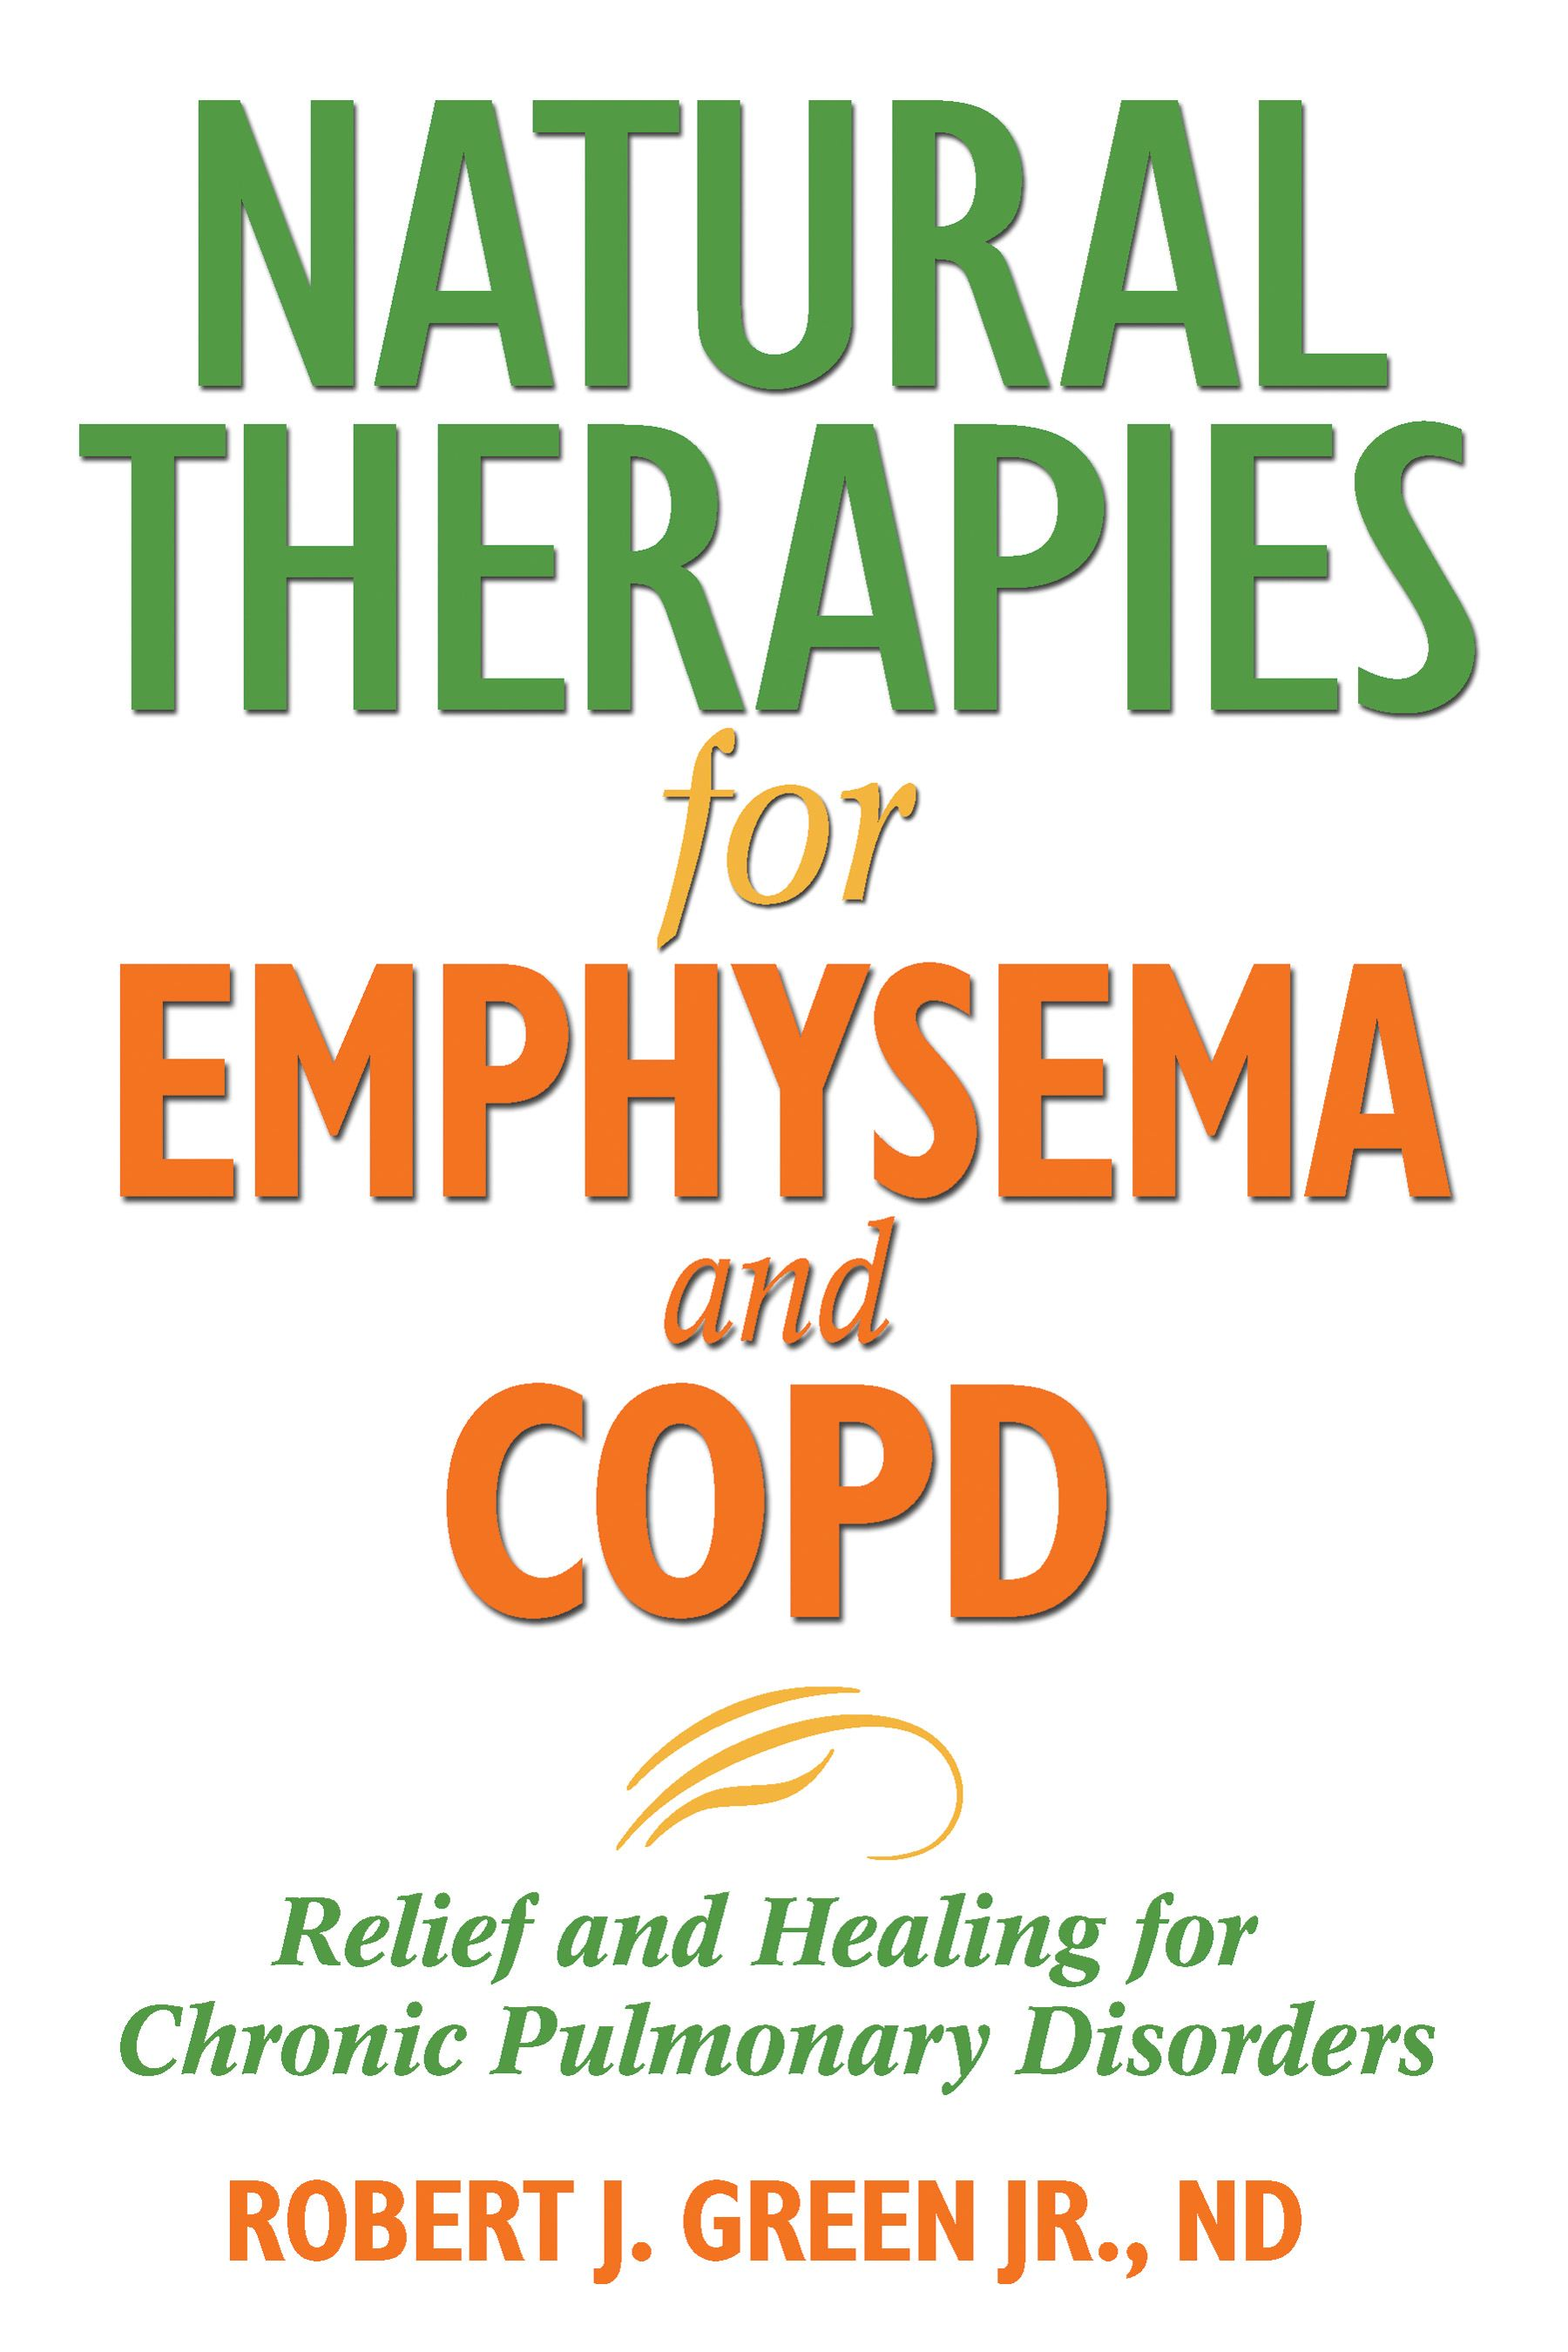 Natural-therapies-for-emphysema-and-copd-9781594771637_hr